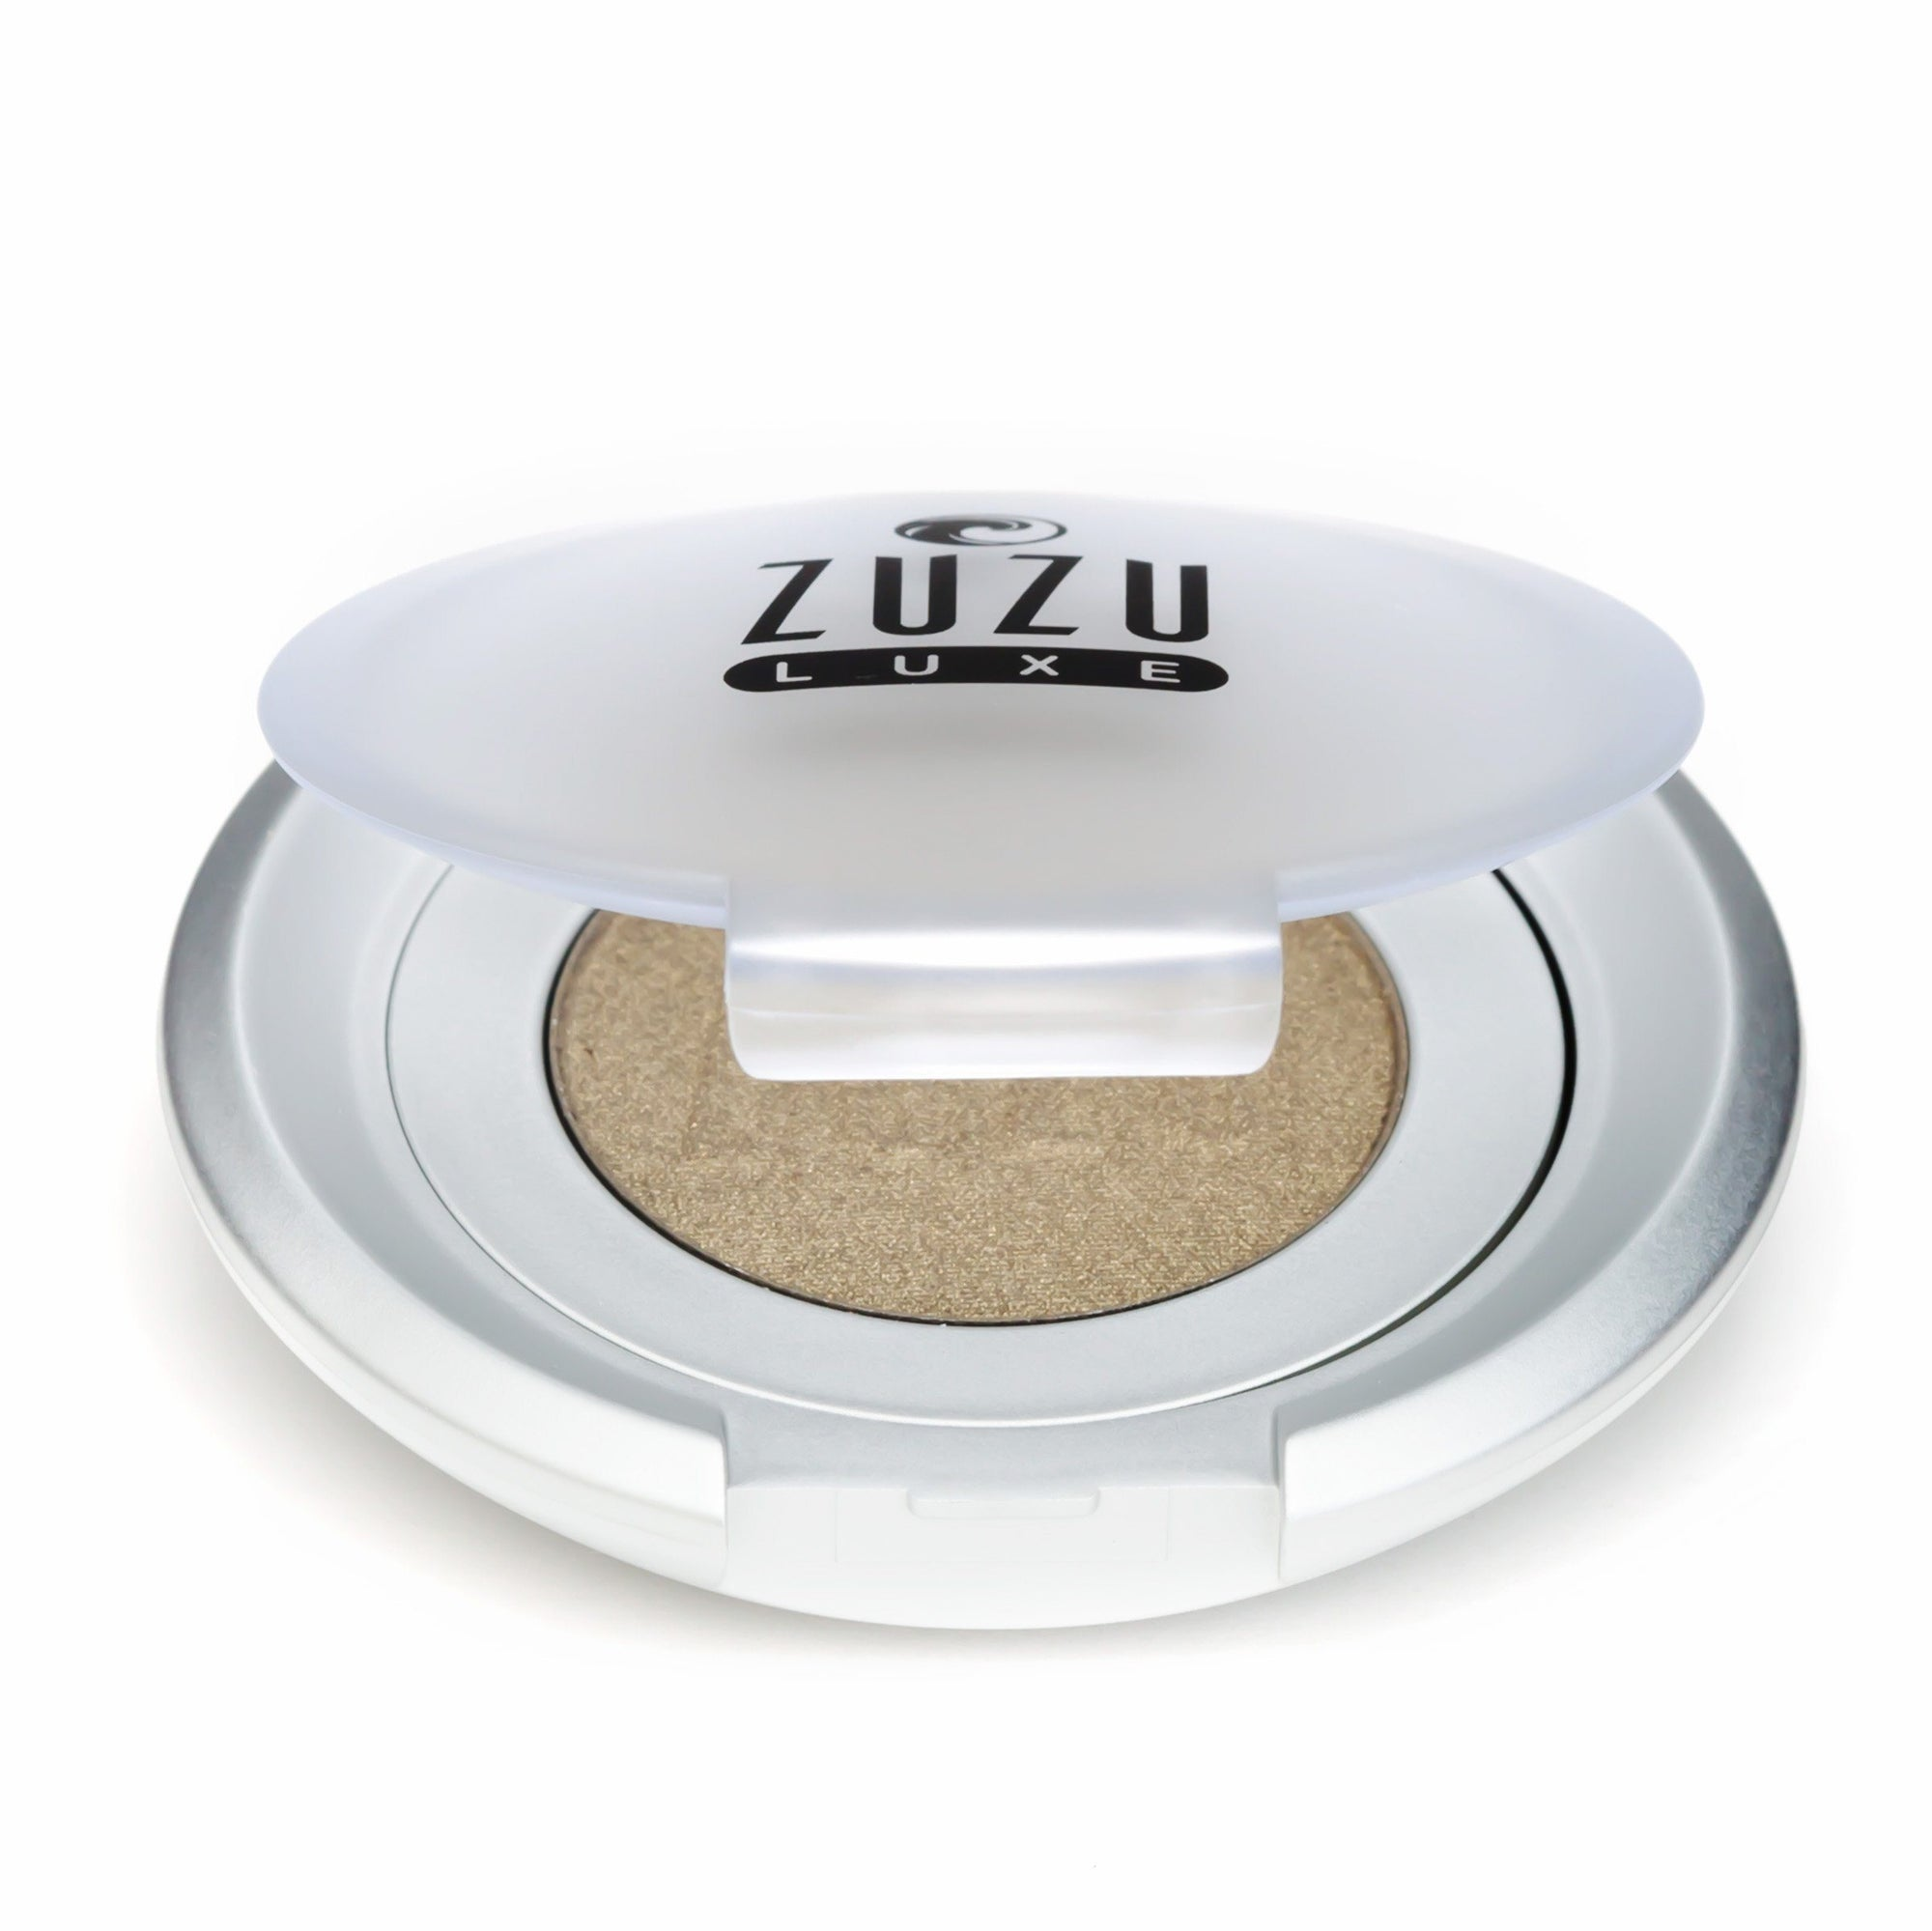 Beauty & Skin Care - Zuzu Luxe - Vegan Eyeshadow, Absinthe